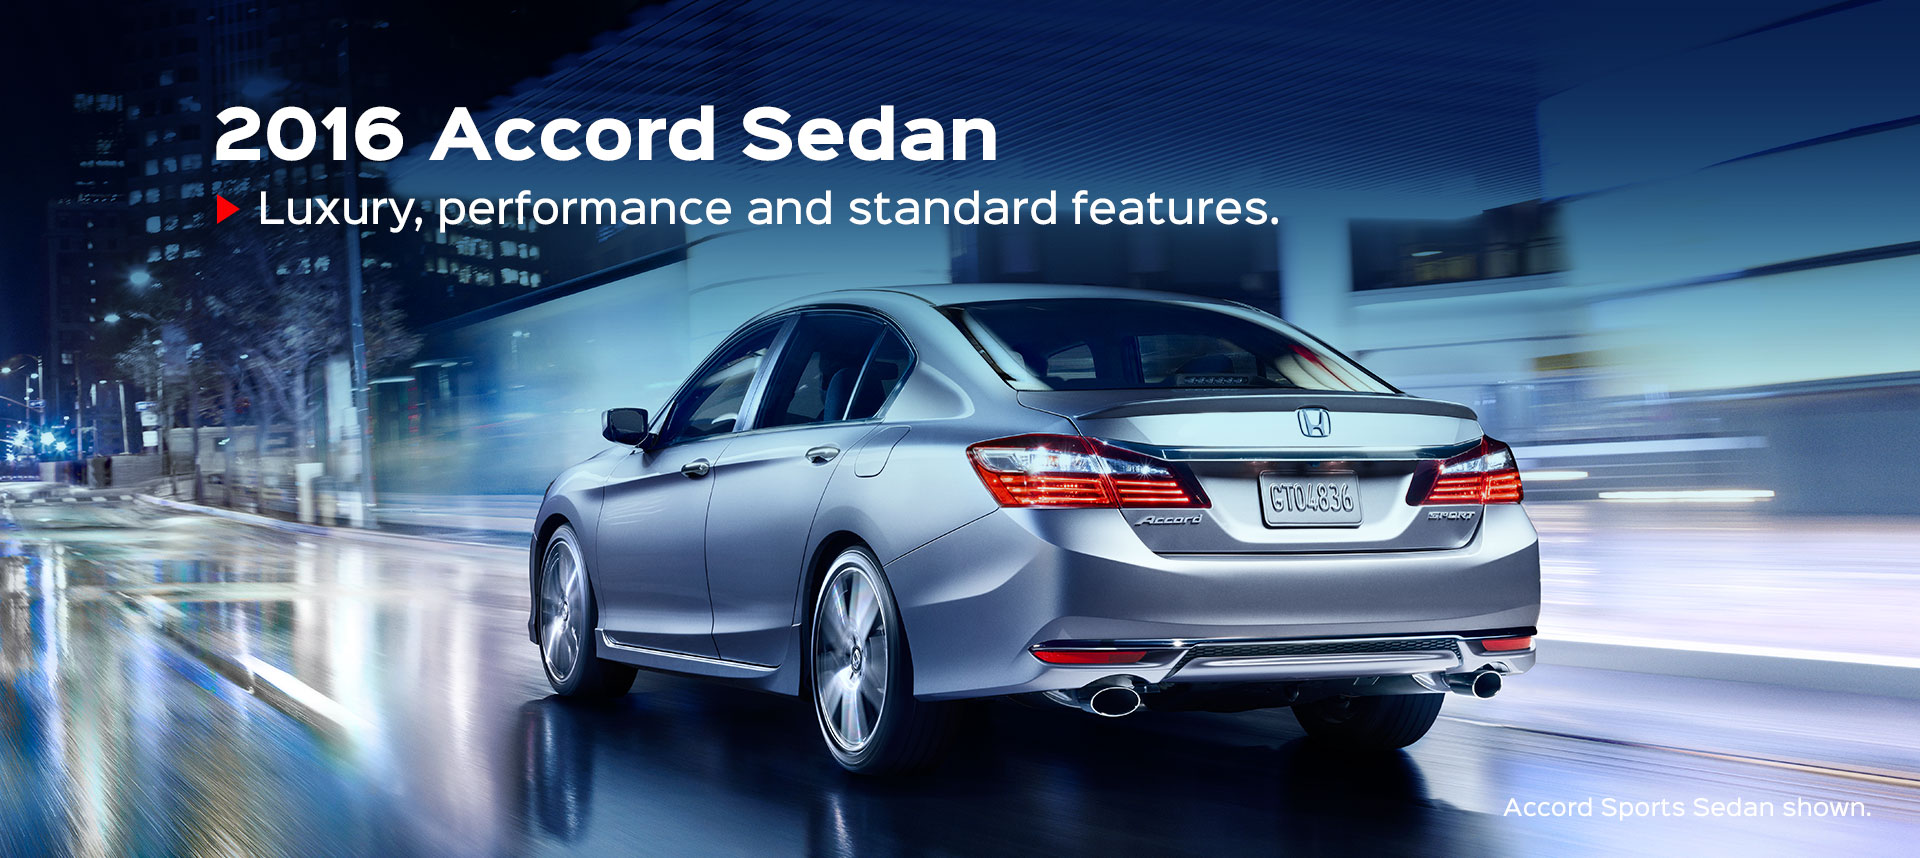 Accord Sedan - CANNED BANNER